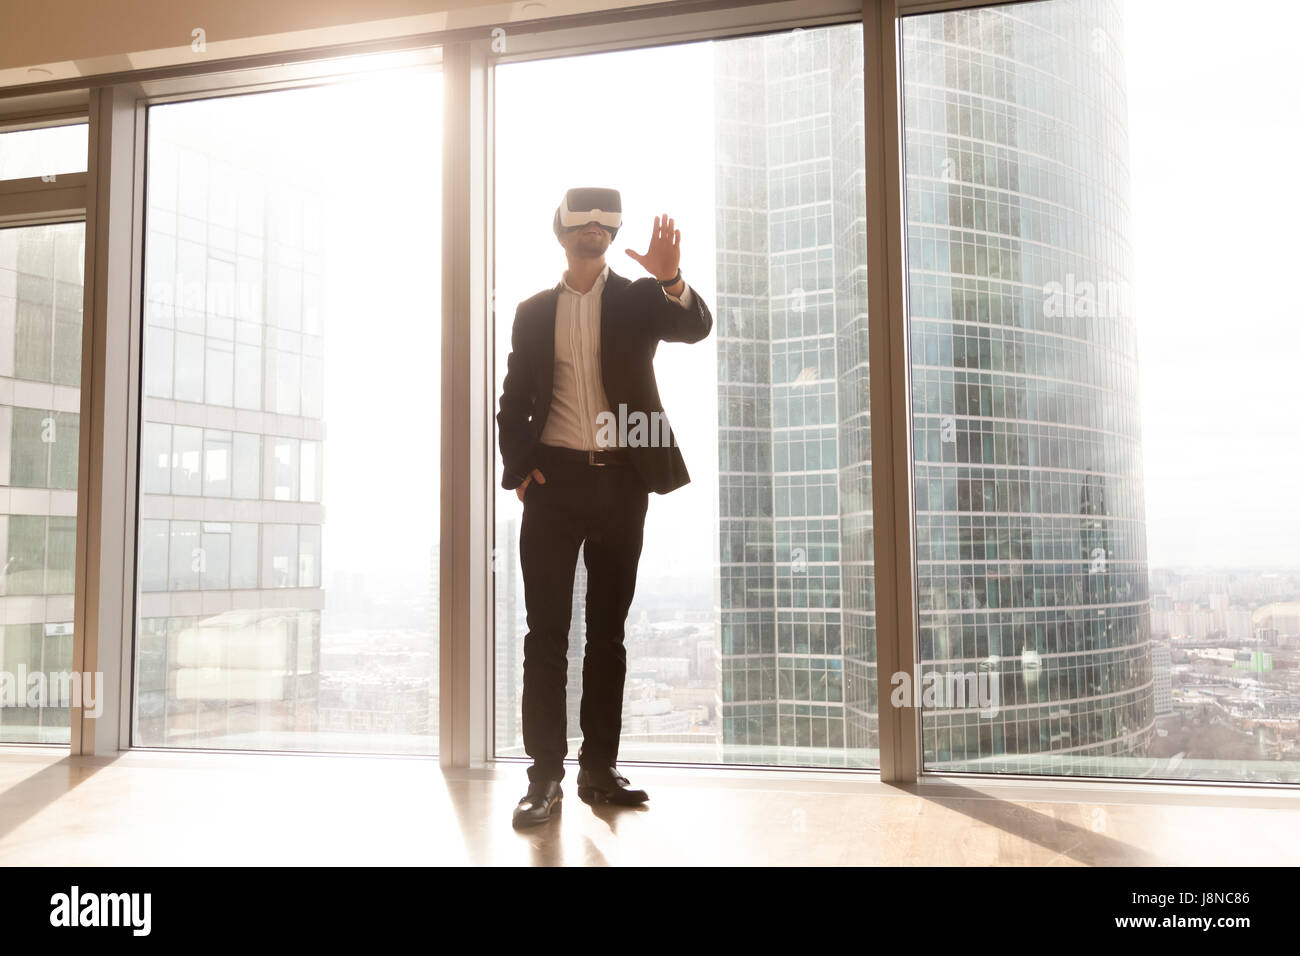 Man in VR headset enjoys interior 3d visualization - Stock Image